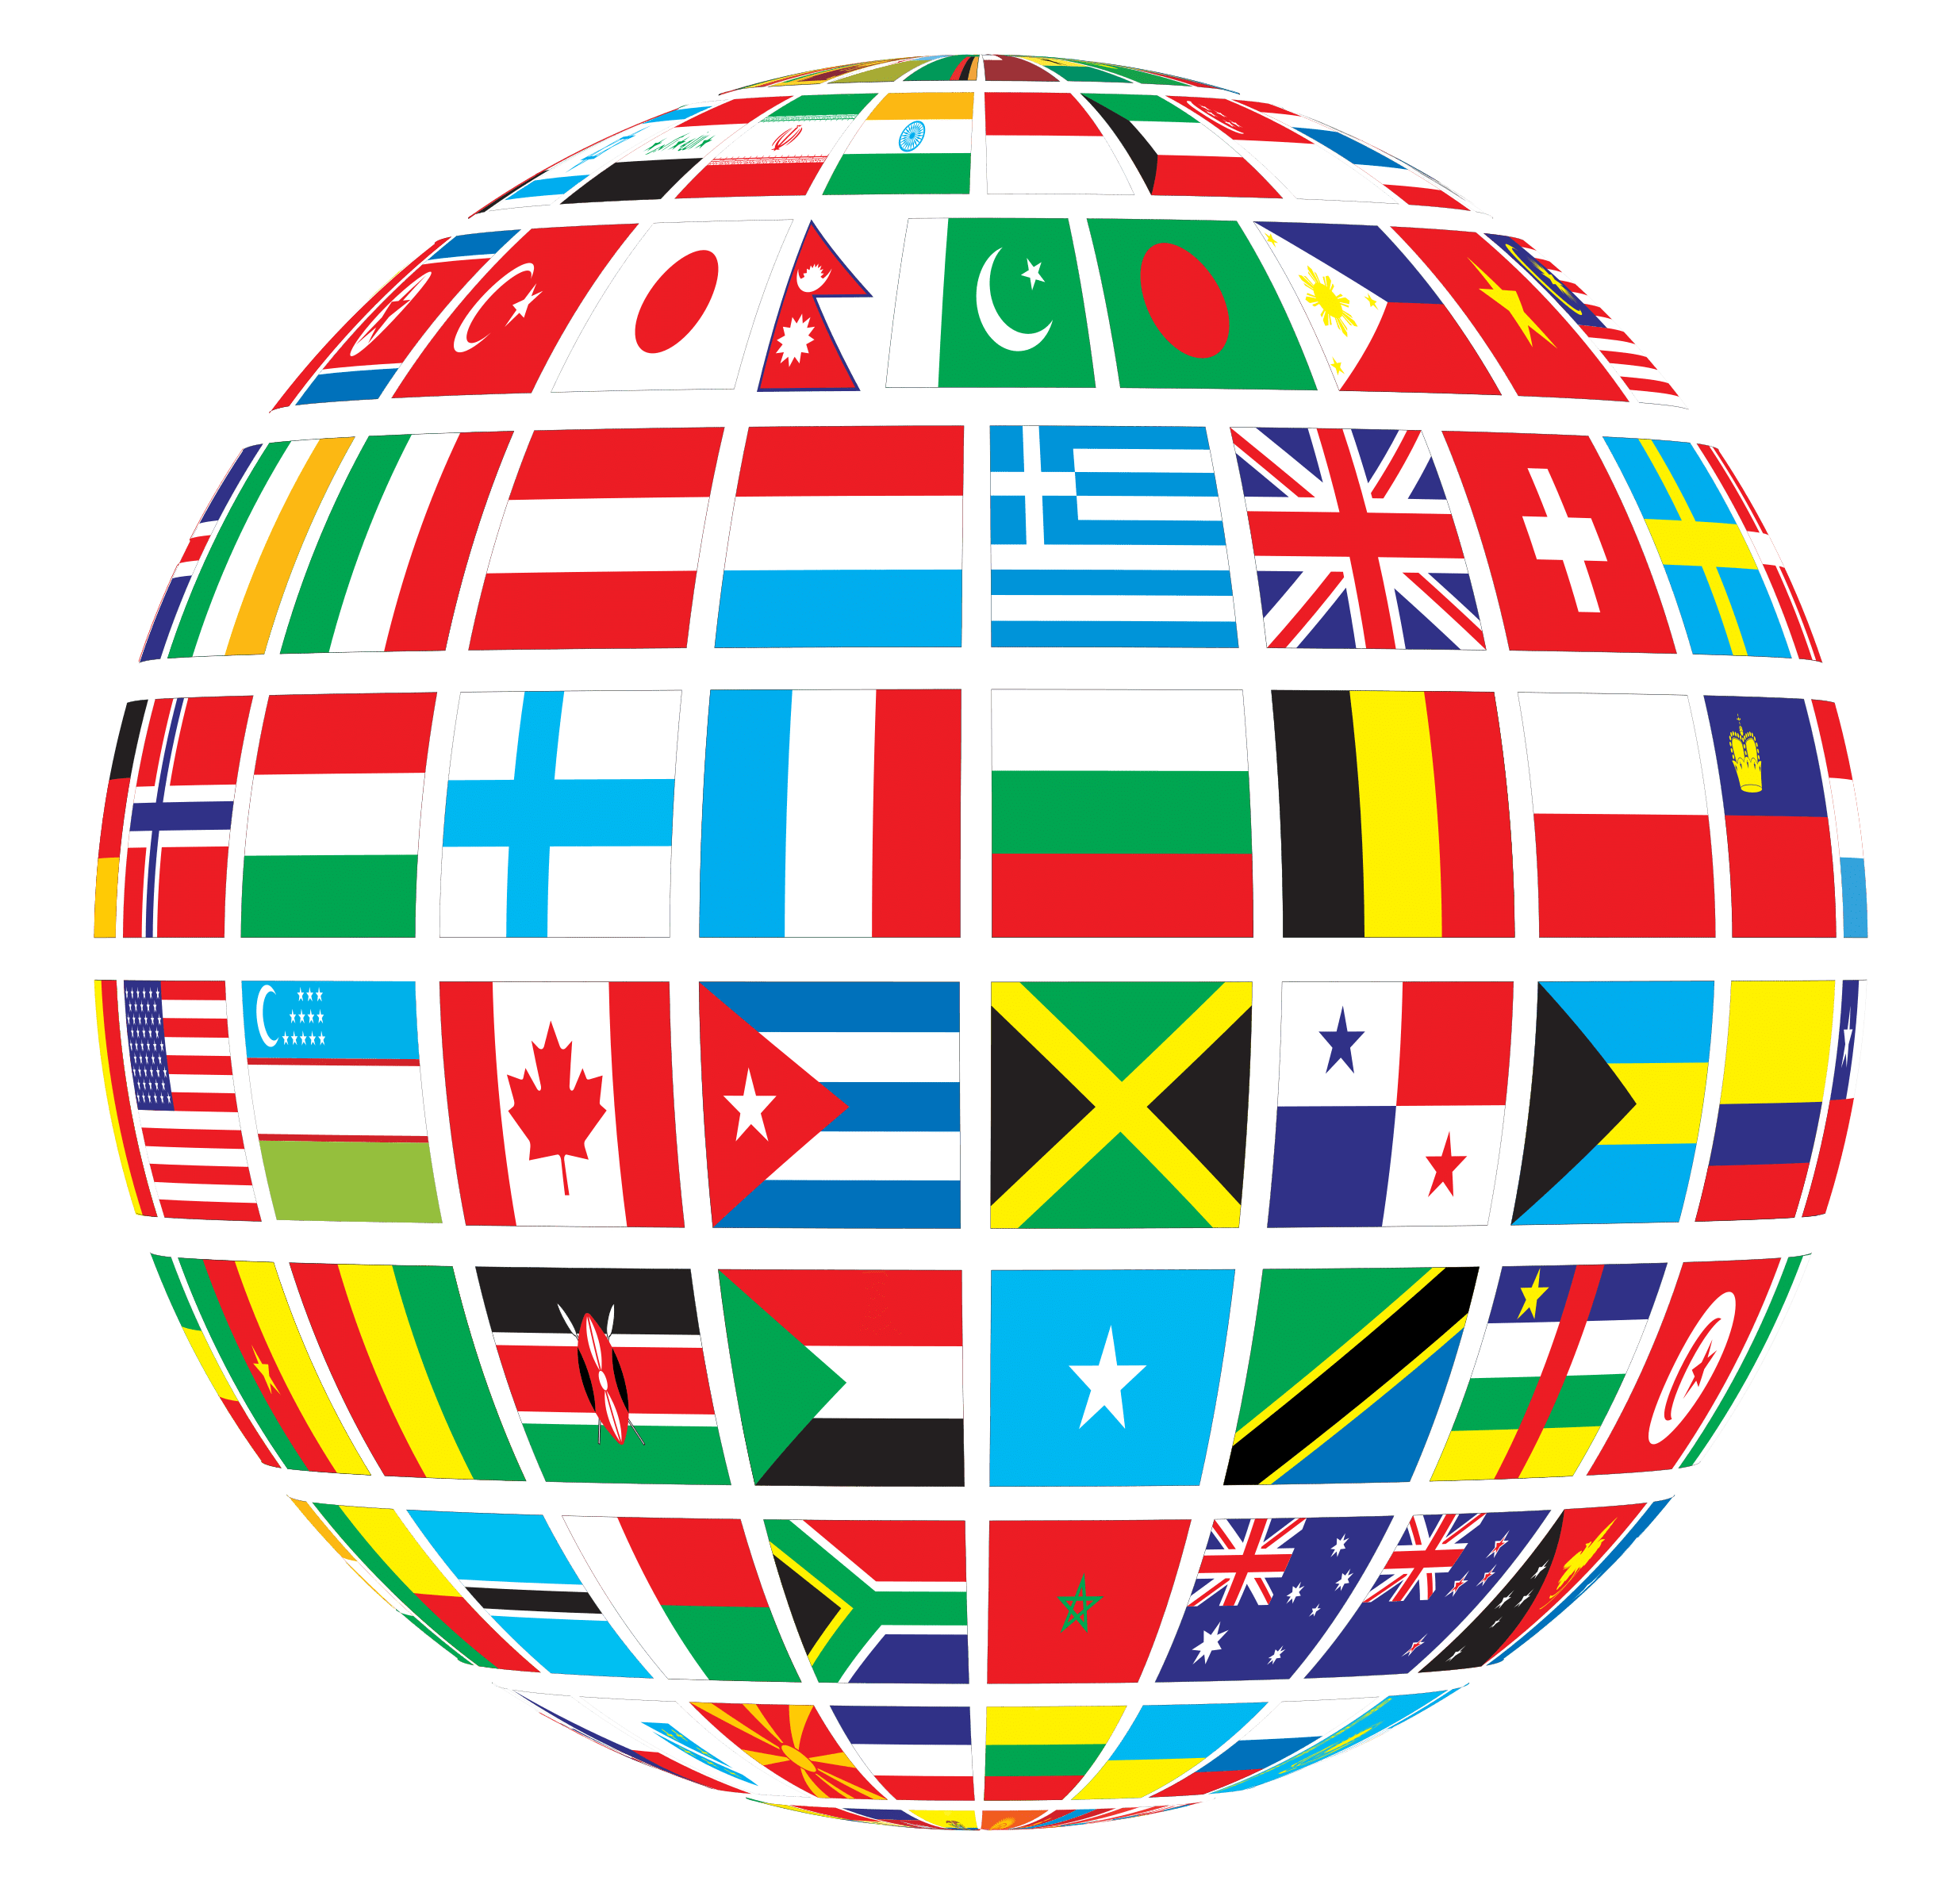 Globe of world transparent. Flags png black and white download